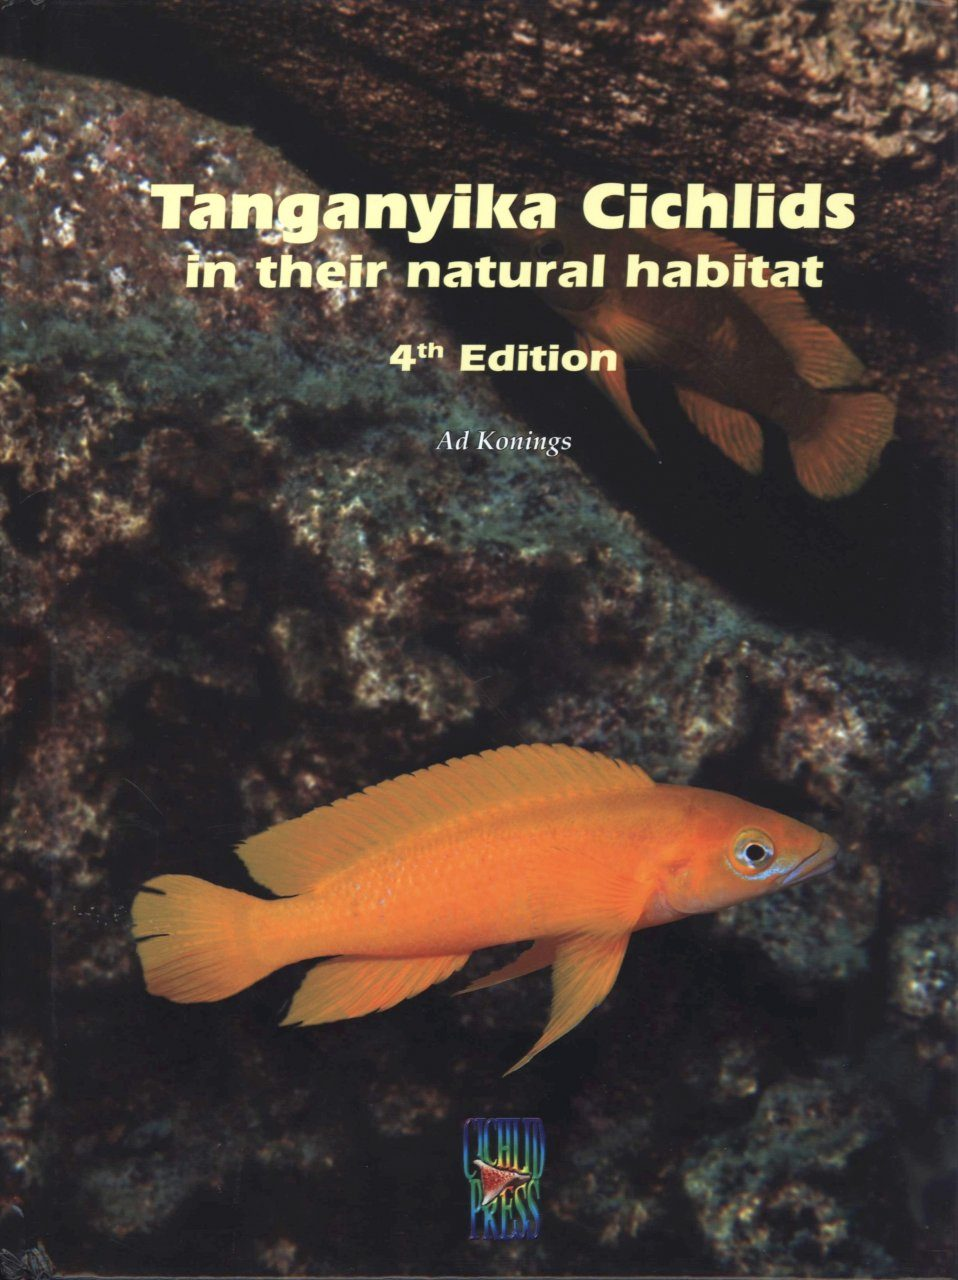 Tanganyika Cichlids in their Natural Habitat